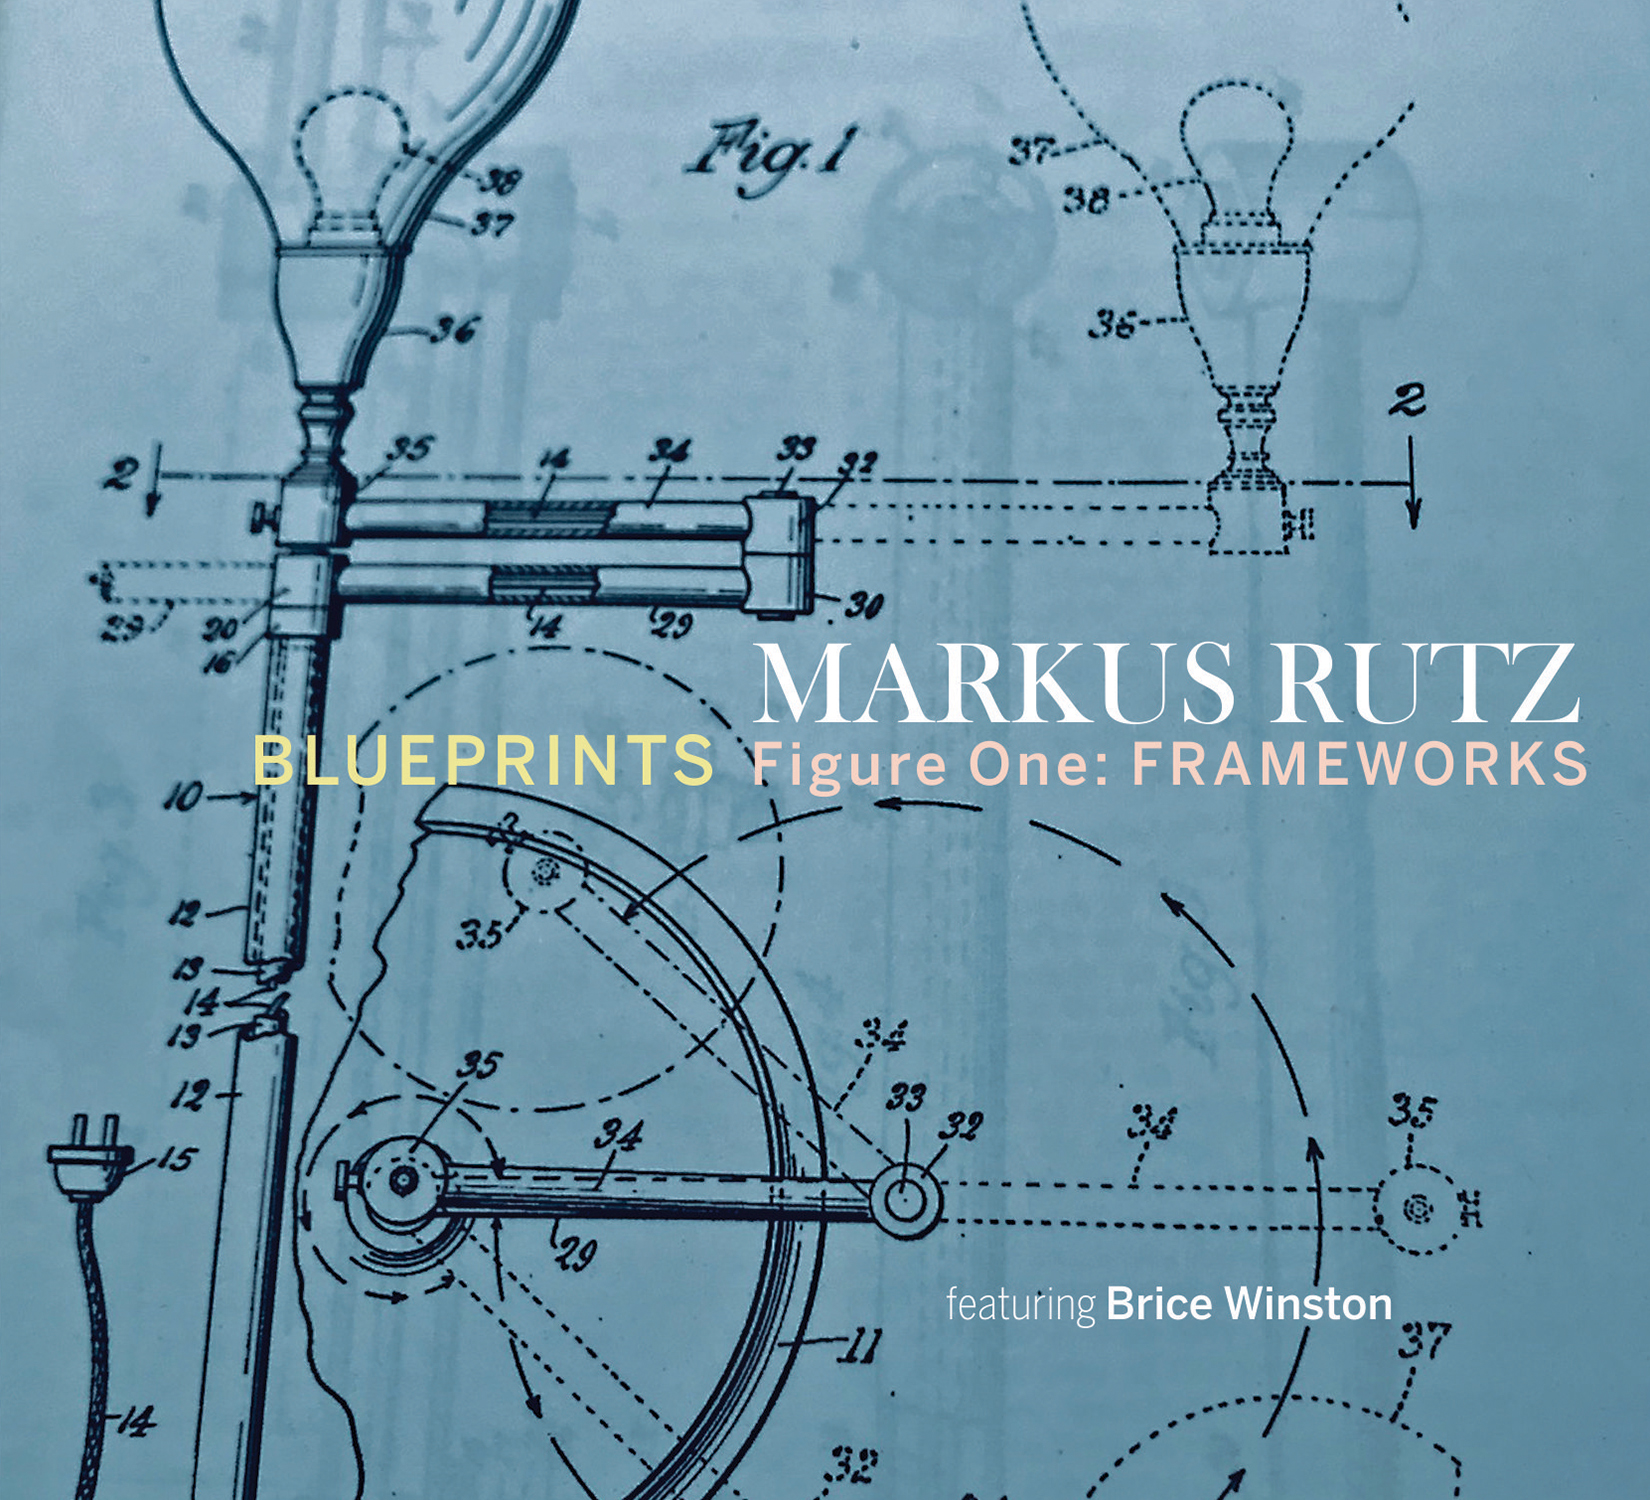 Markus Rutz Quintet Record Release Performance - Blueprints, Figure 1